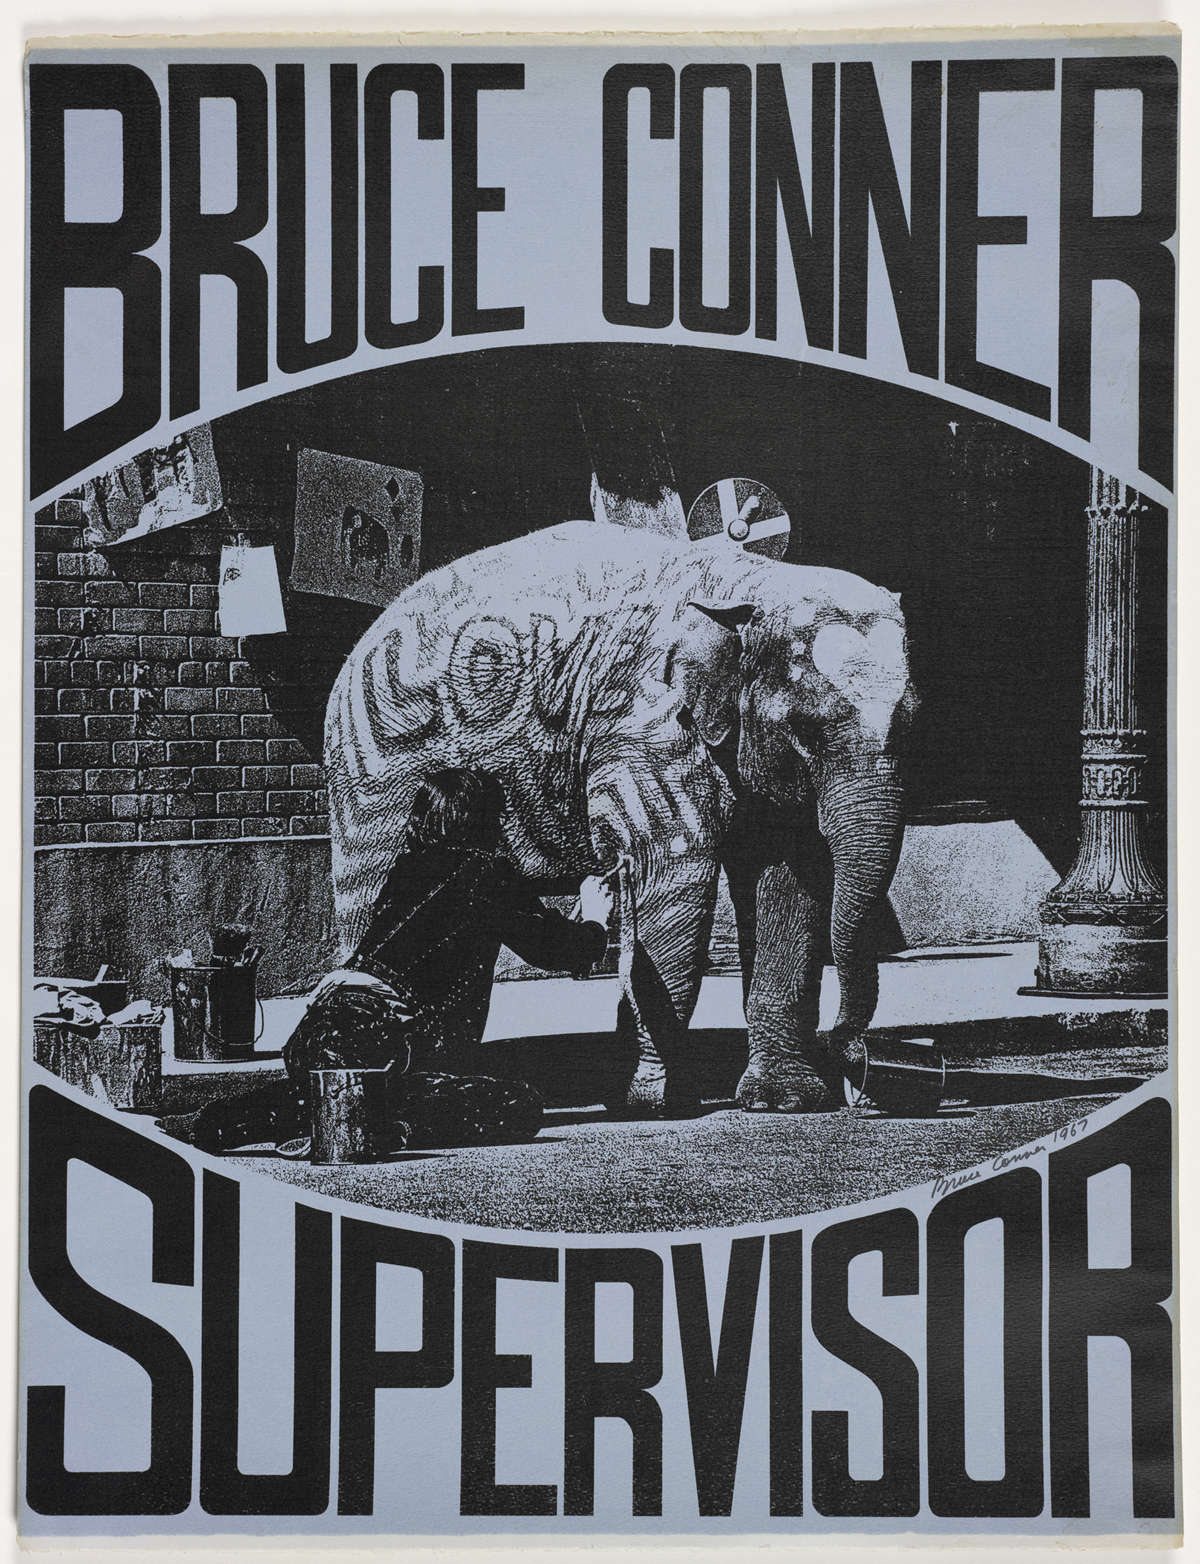 Dagny Janss and Bruce Conner  BRUCE CONNER for SUPERVISOR , 1967 Two color screen print Collection San Francisco Museum of Modern Art, Gift of Michael Kohn, ©Conner Family Trust, San Francisco / Artists Rights Society (ARS), New York